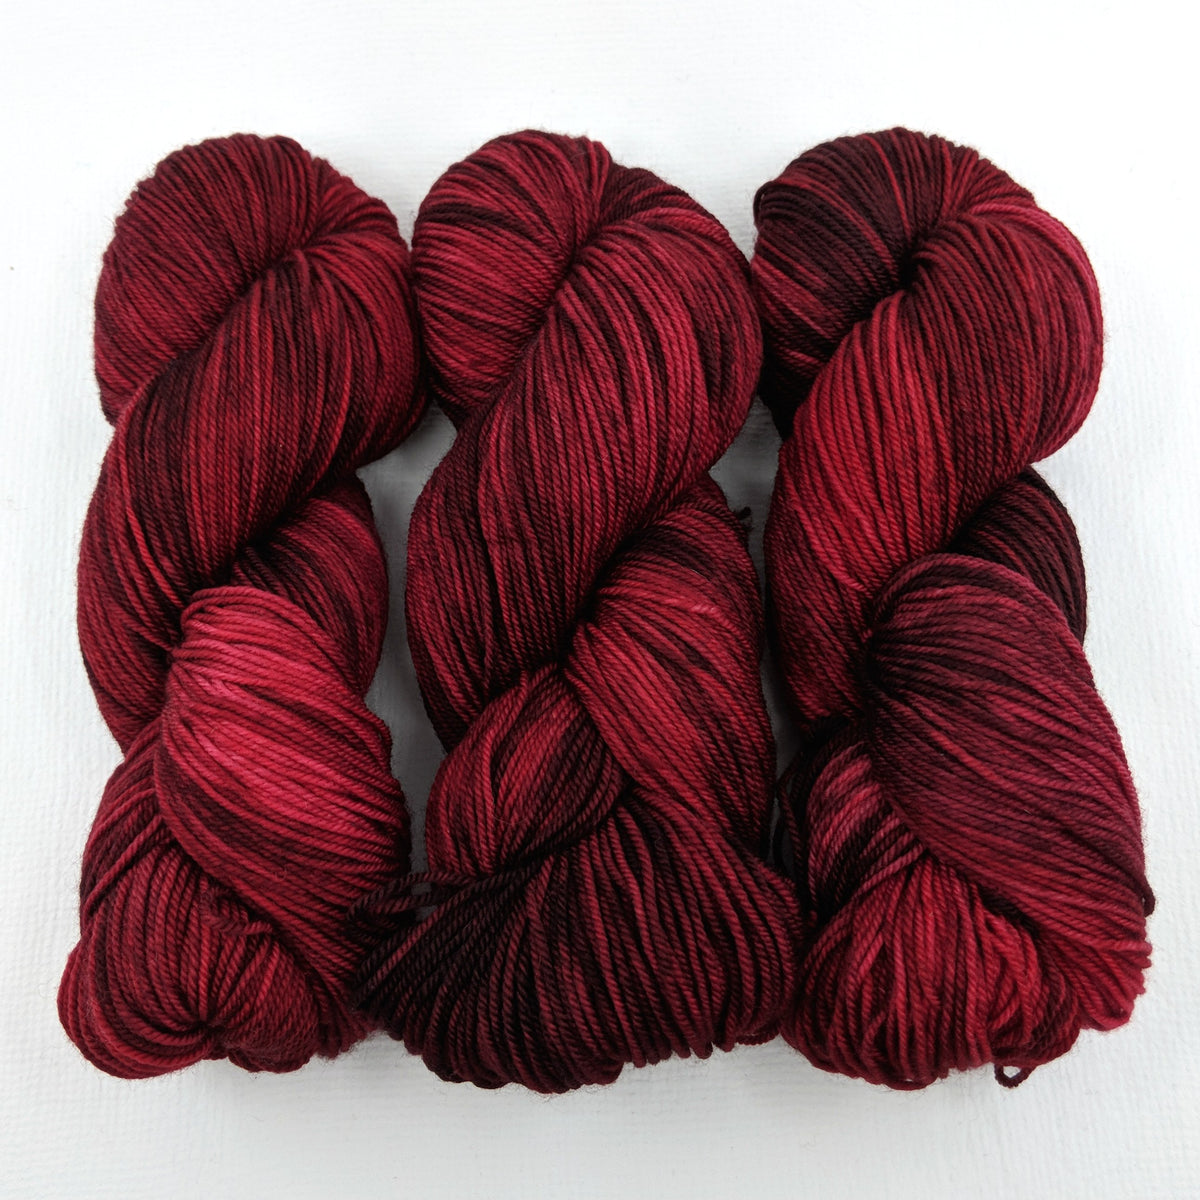 Syrah by Moonlight - Socknado Fingering - Dyed Stock